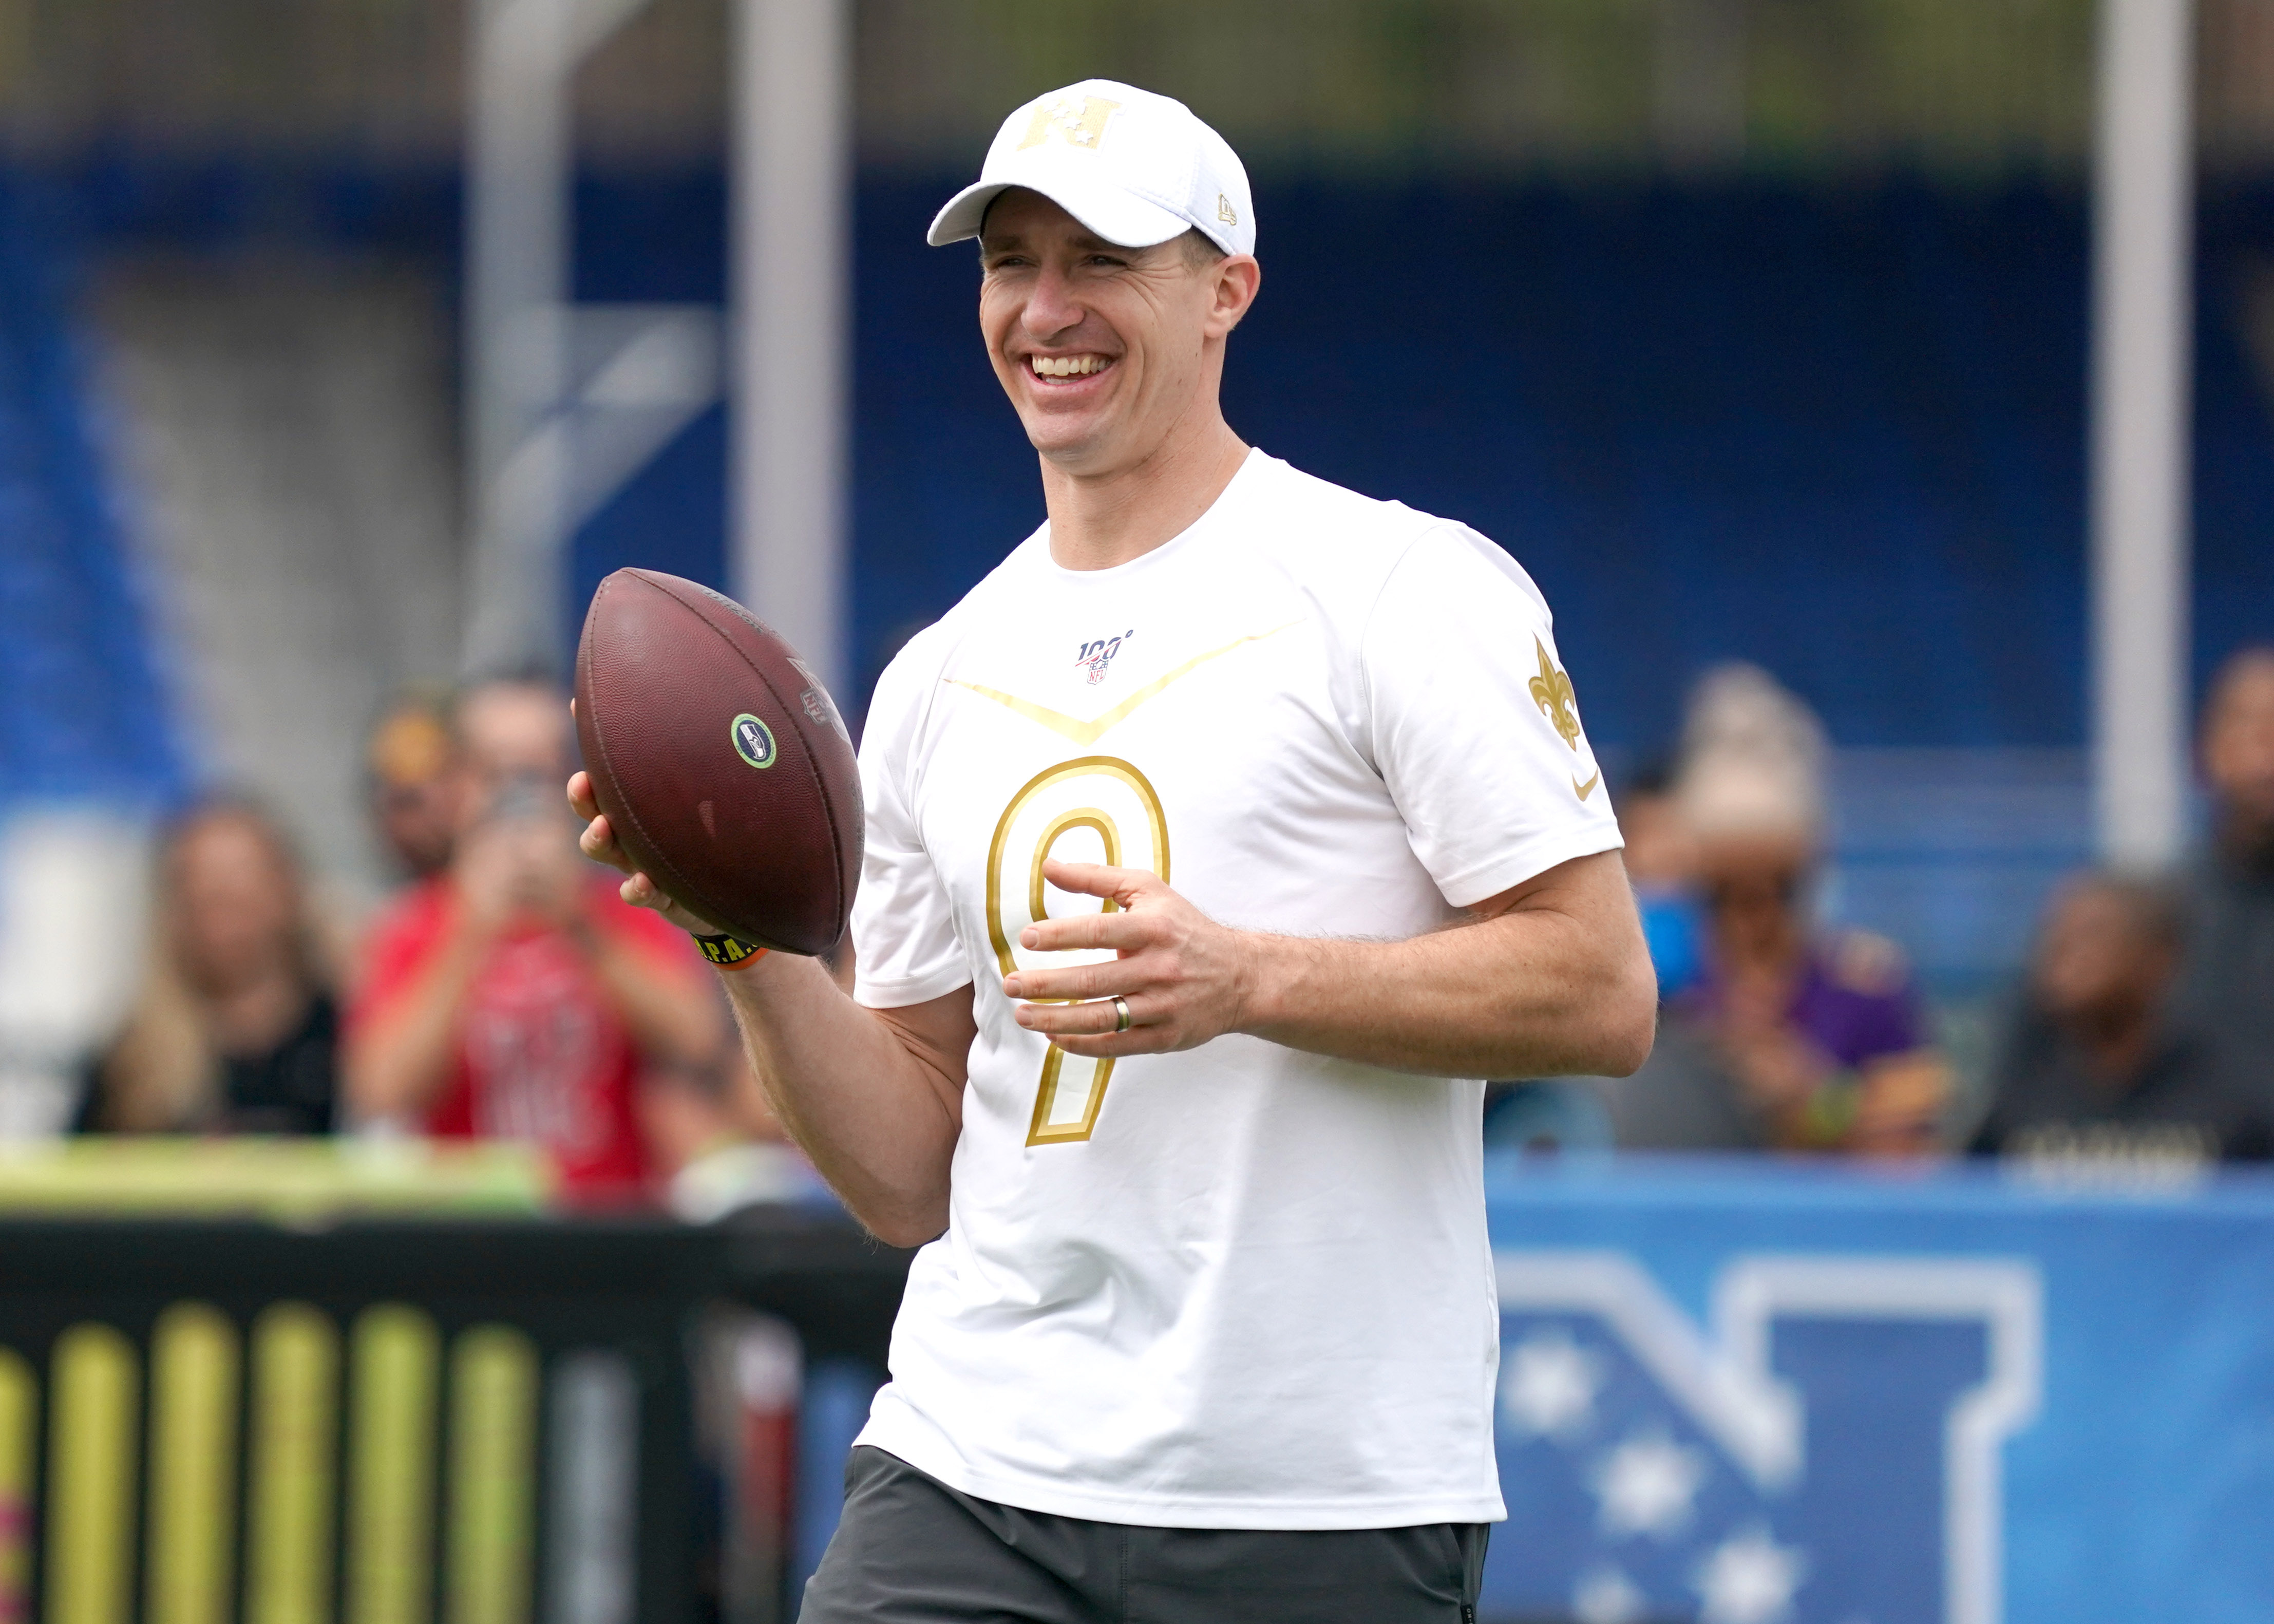 Drew Brees open to taking less money in new contract to help Saints build roster